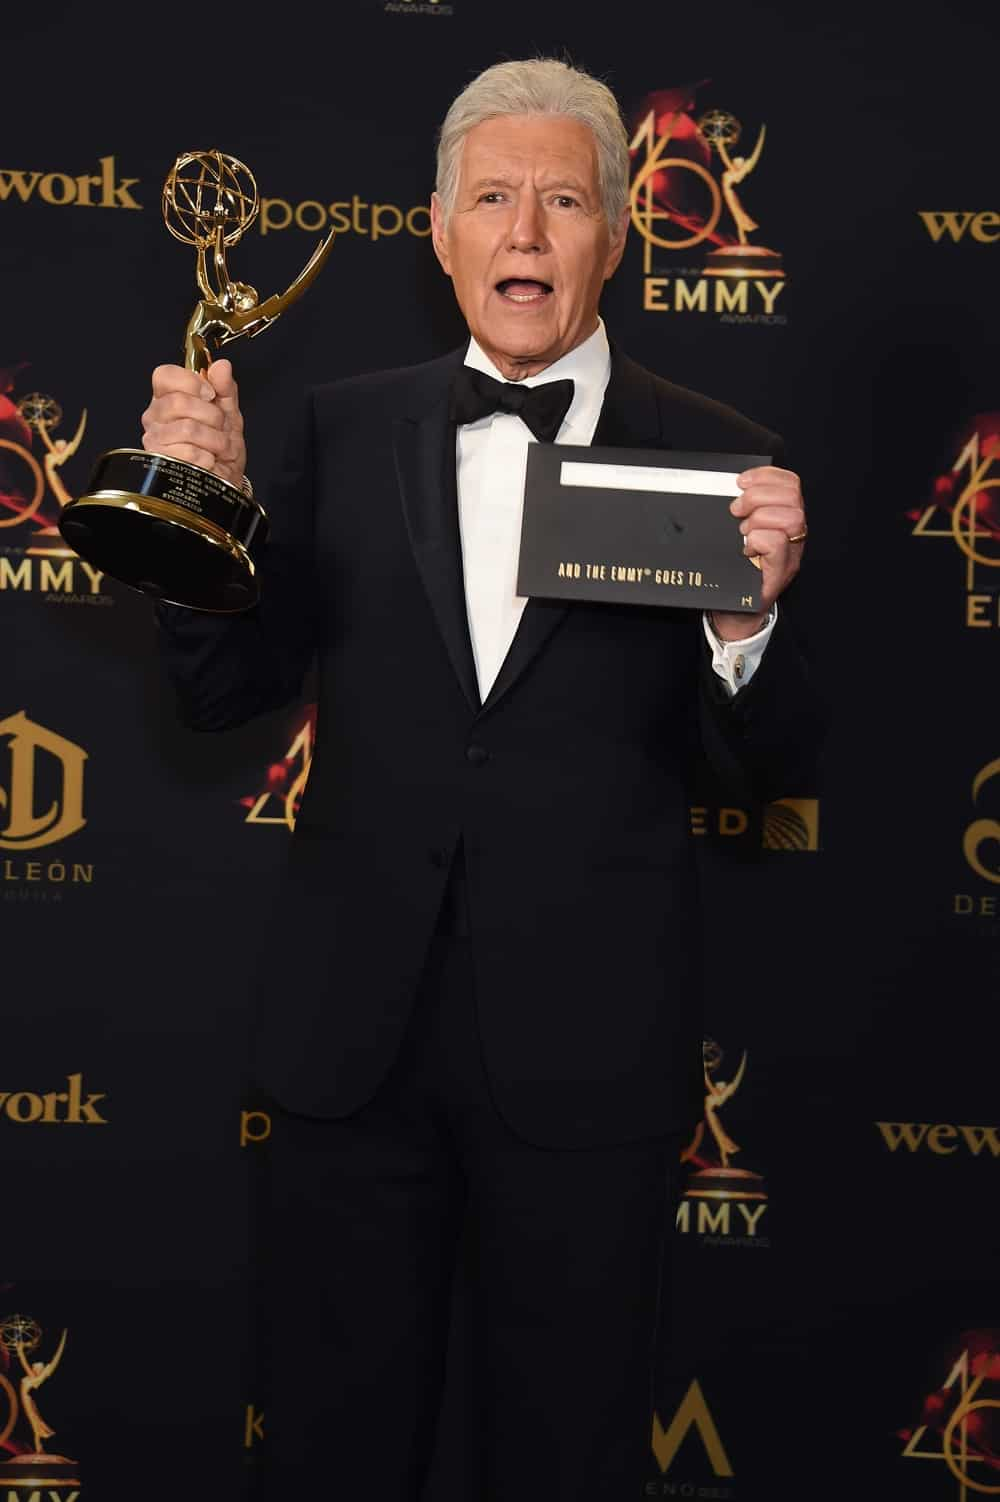 Alex Trebek 46th Annual Daytime Emmy Awards - Press Room